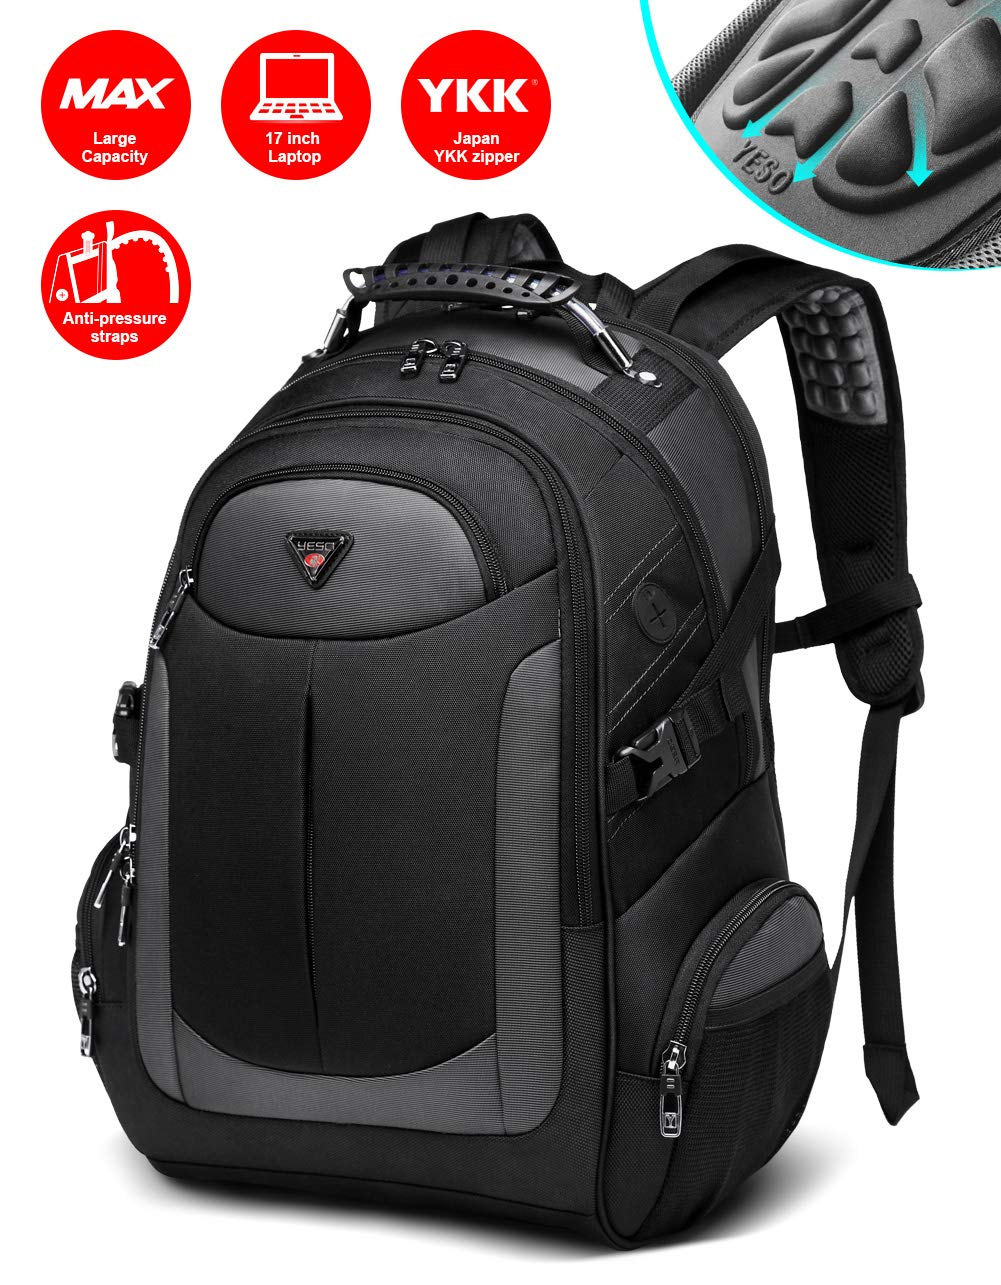 c585fb91a99d Backpack for Men, Business Slim Durable Laptop Backpacks with YKK Zipper,  Water Resistant College School Computer Bag for Men & Women Fits 17 inch ...